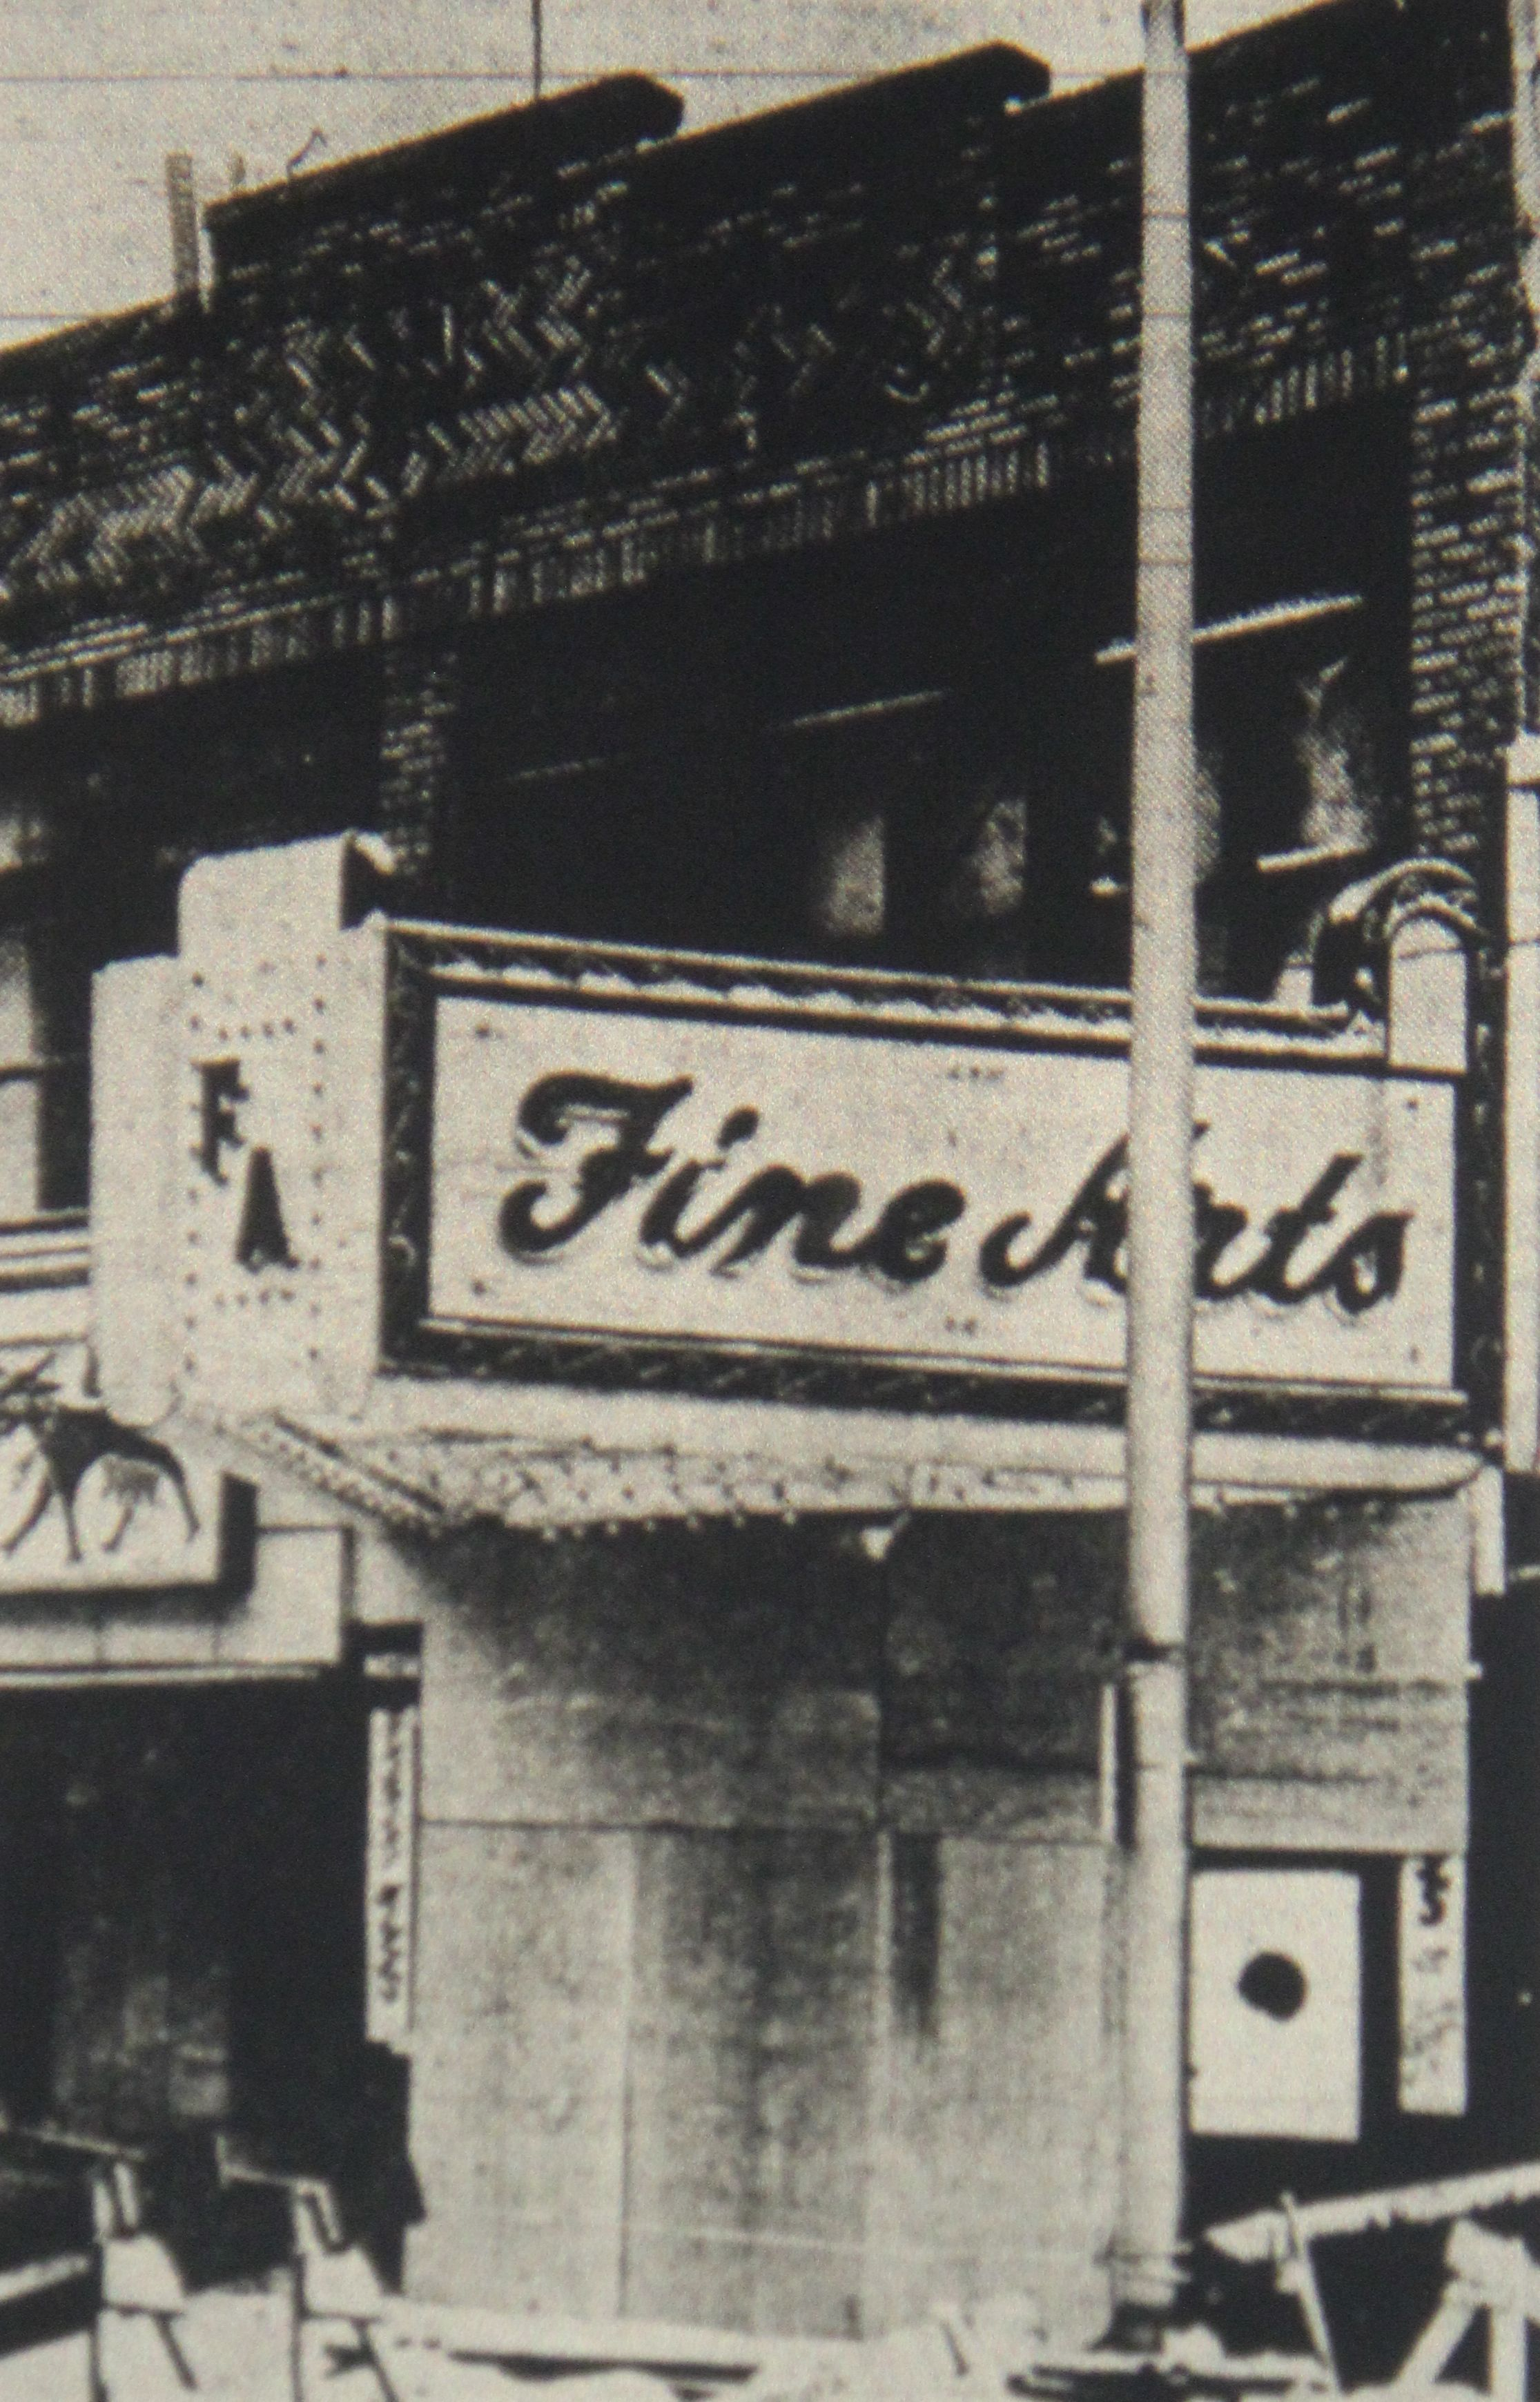 fine arts theater in passaic nj 1970 the first